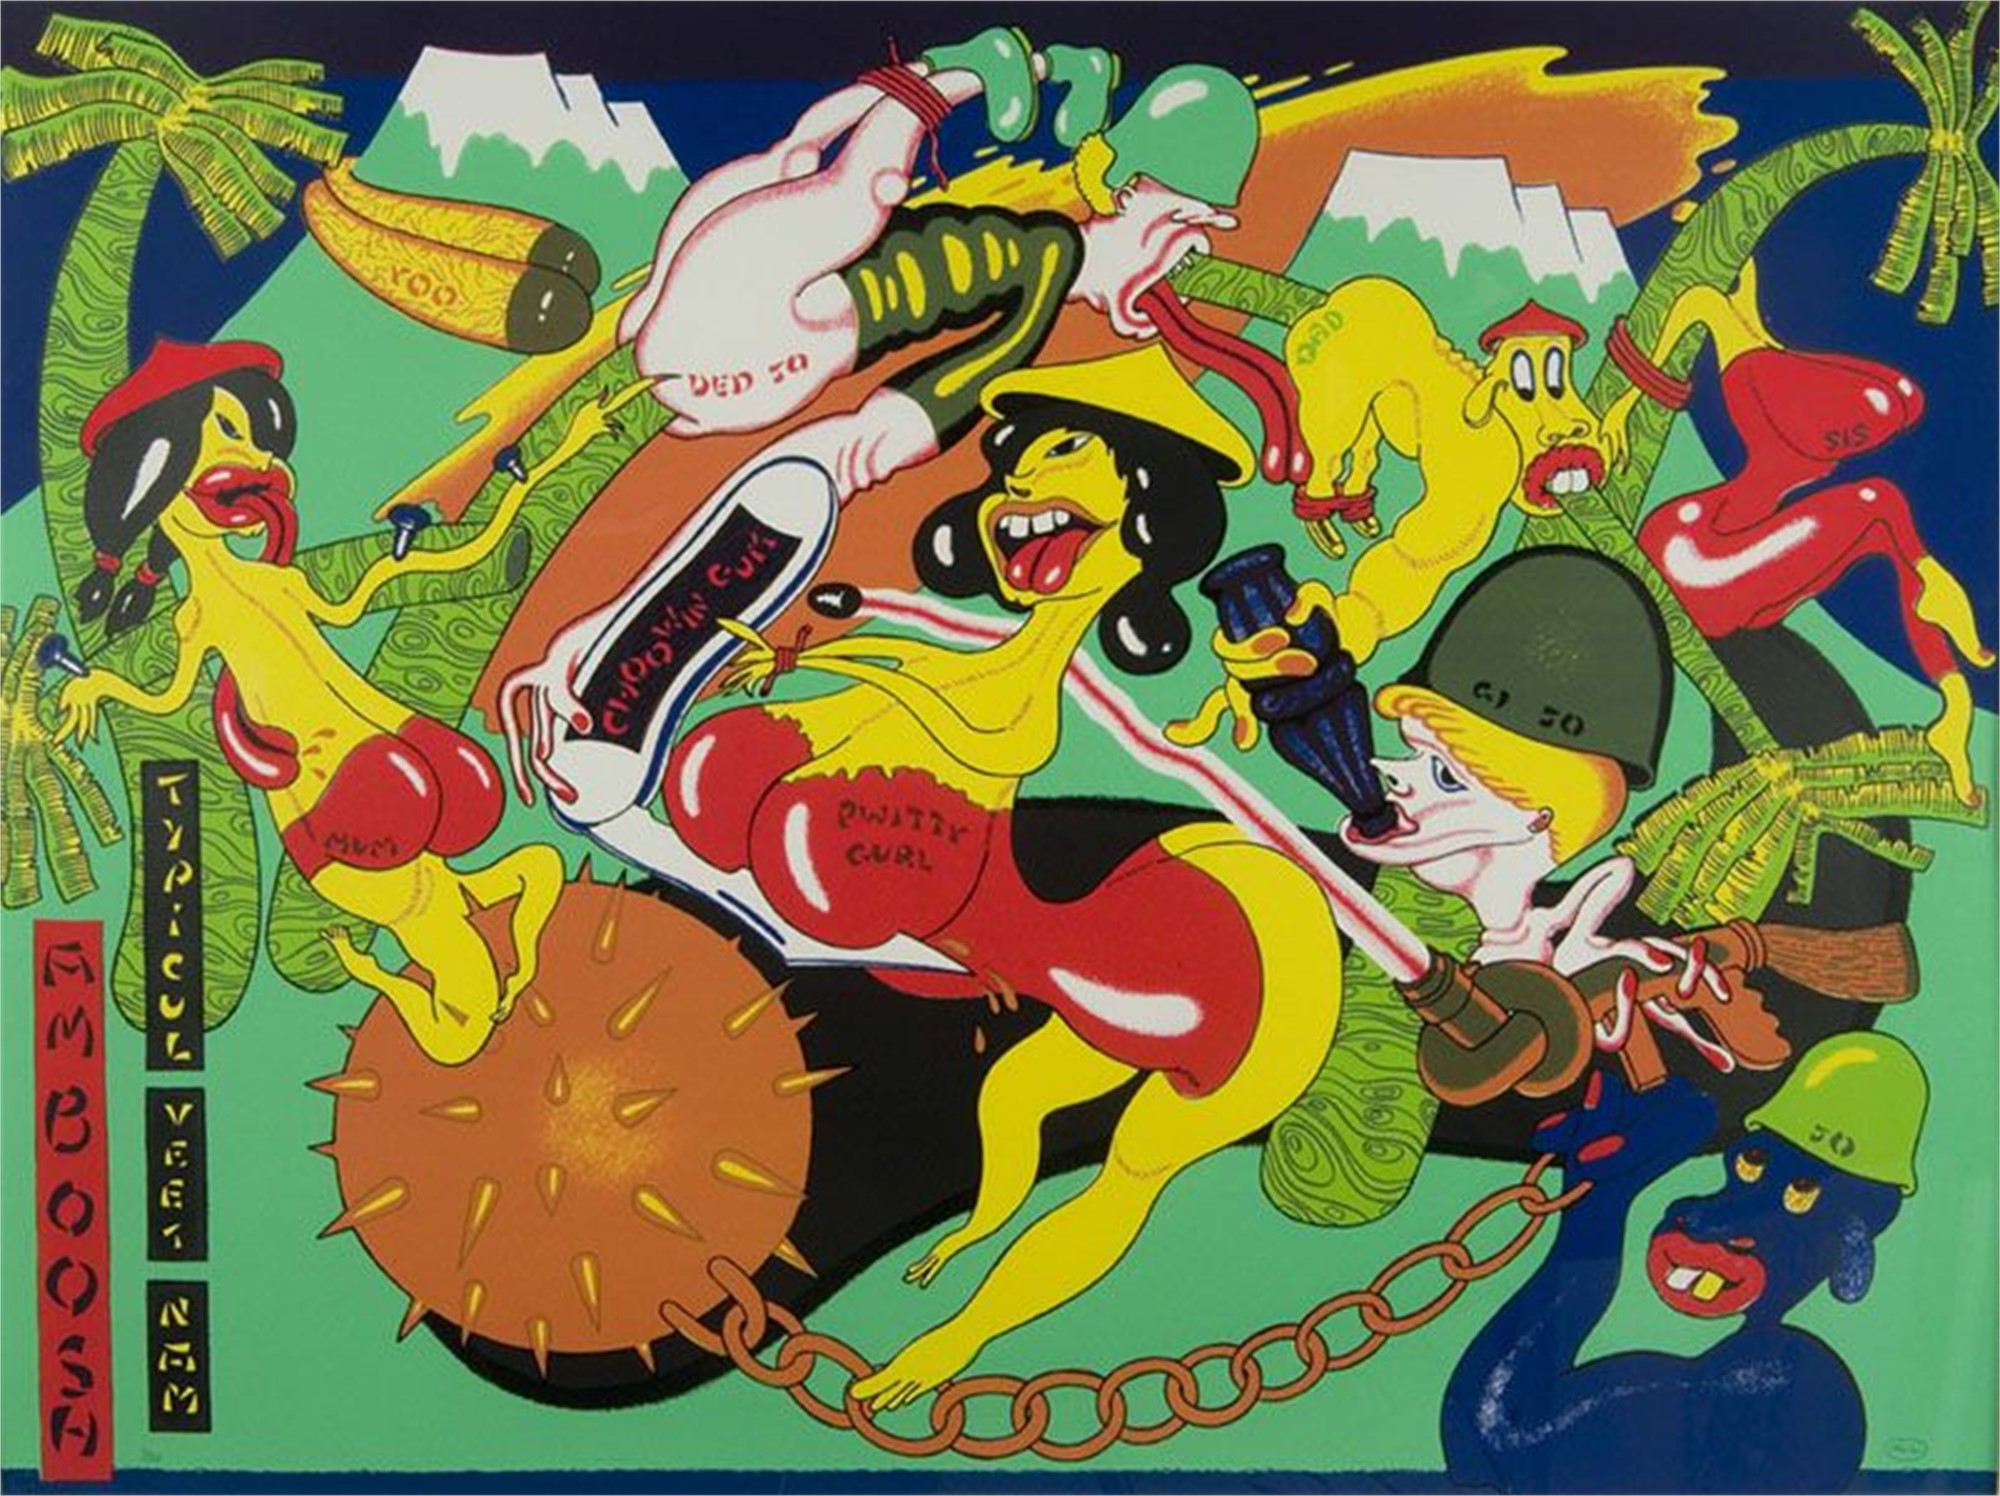 Amboosh by Peter Saul